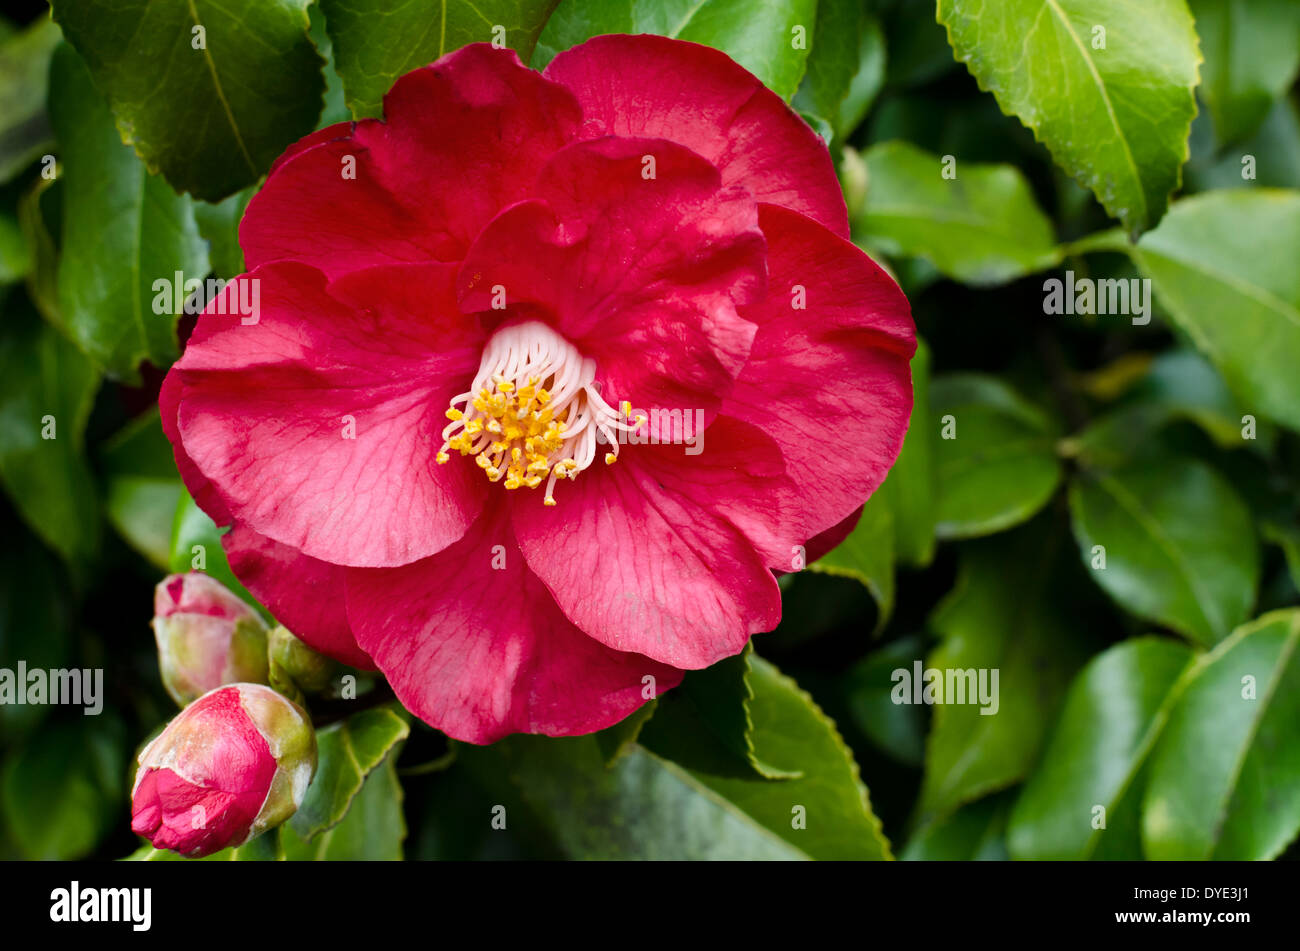 Camellia Japonica Roger Hall red blooming blossom of camellia japonica on a bush in the